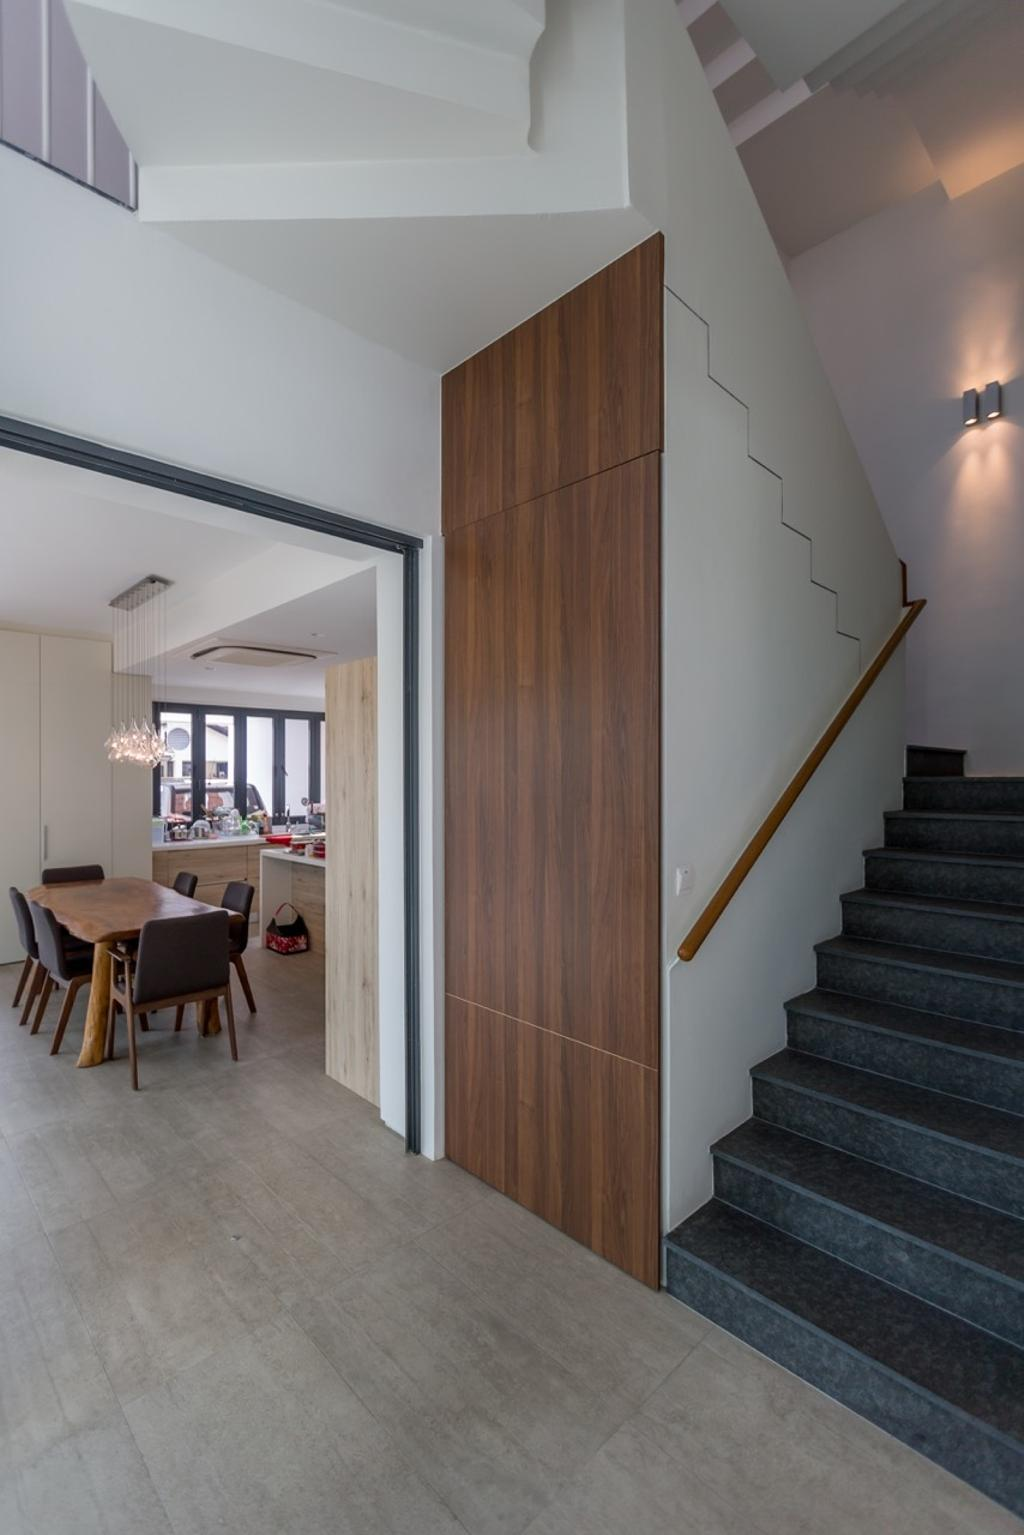 Contemporary, Landed, Minaret Walk, Architect, EZRA Architects, Wooden Wall, Glass Railing, Wall Lighting, Wall Light, Wooden Table, Dining Table, Black Chairs, Furniture, Table, Banister, Handrail, Staircase